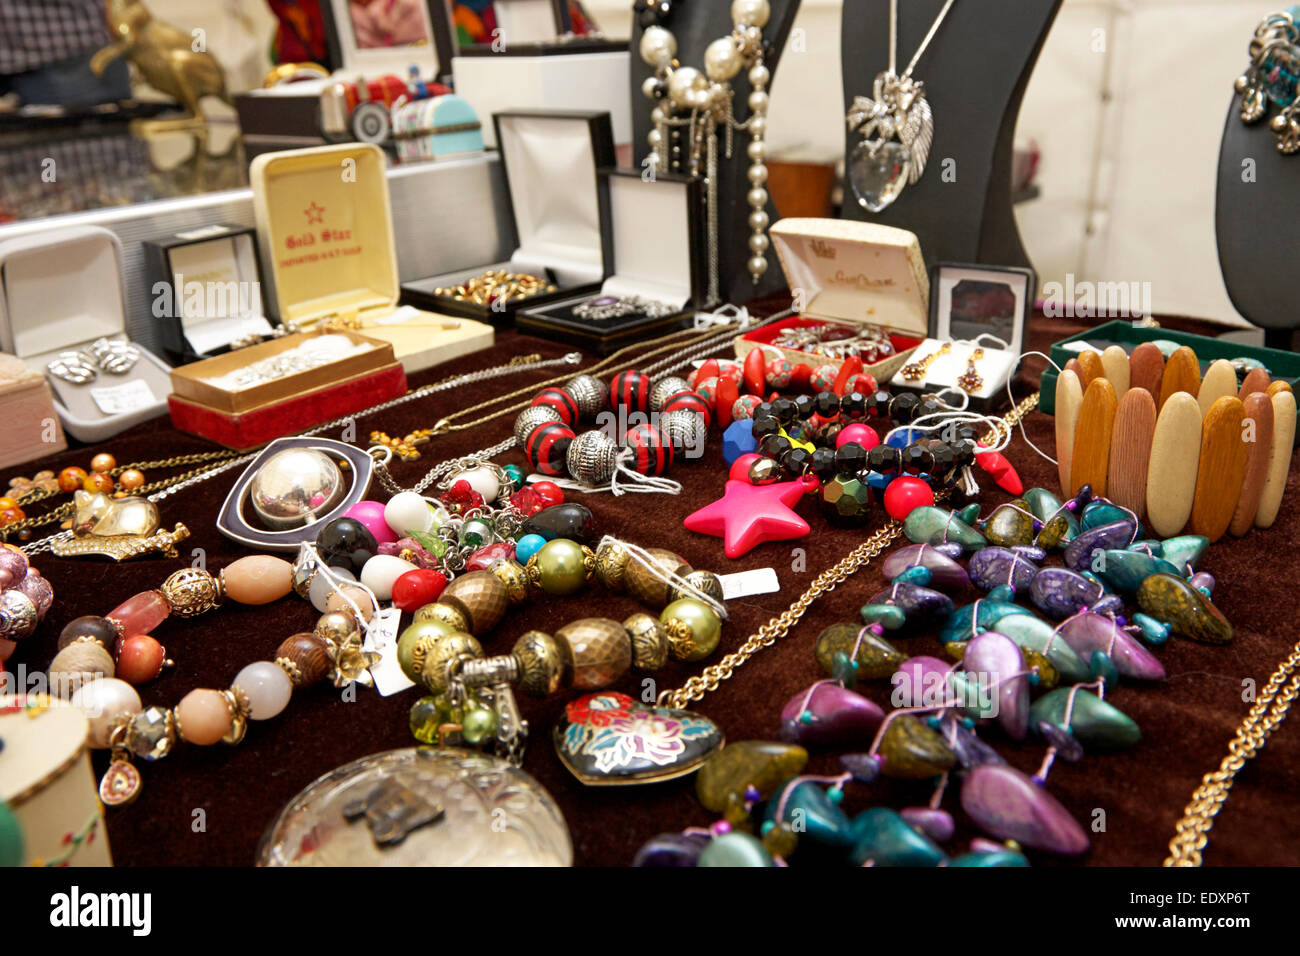 Home Made Small Business Jewelry Items On A Stall In A Craft Market